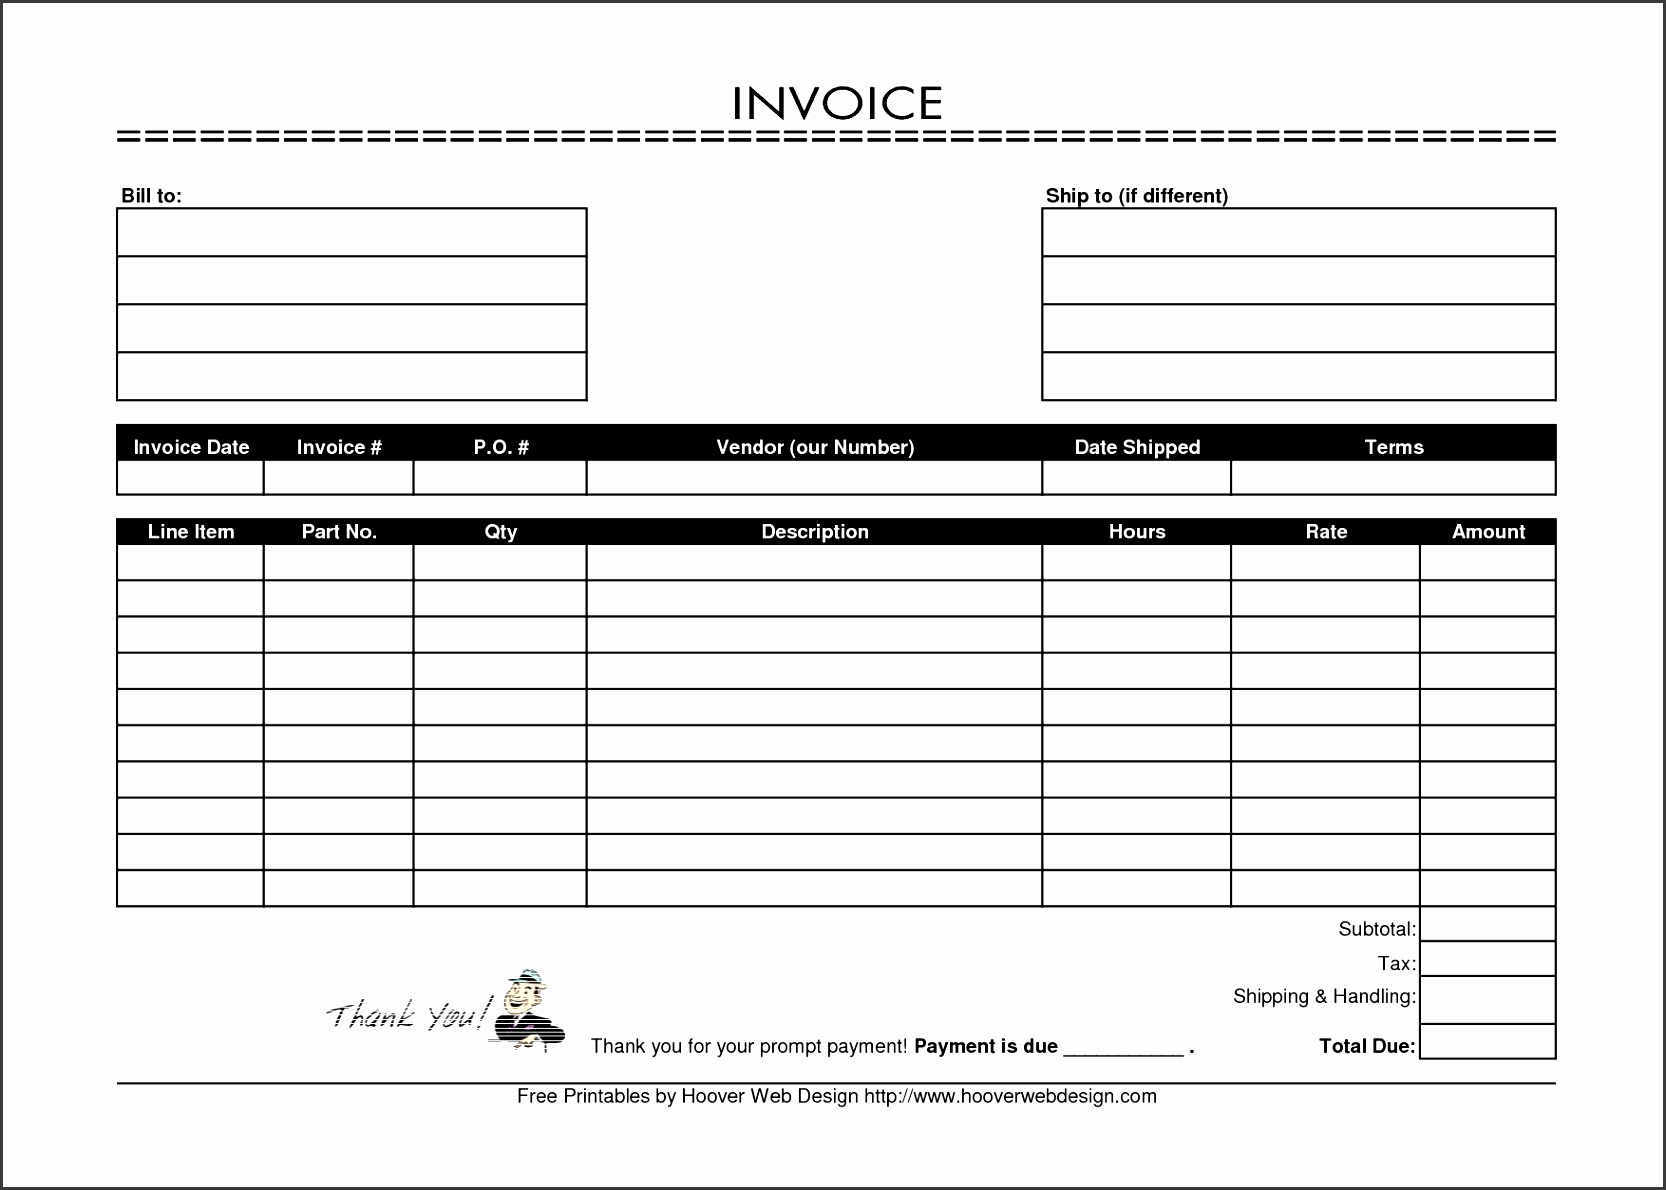 Payroll Invoice Template and Free Invoice software Small Business